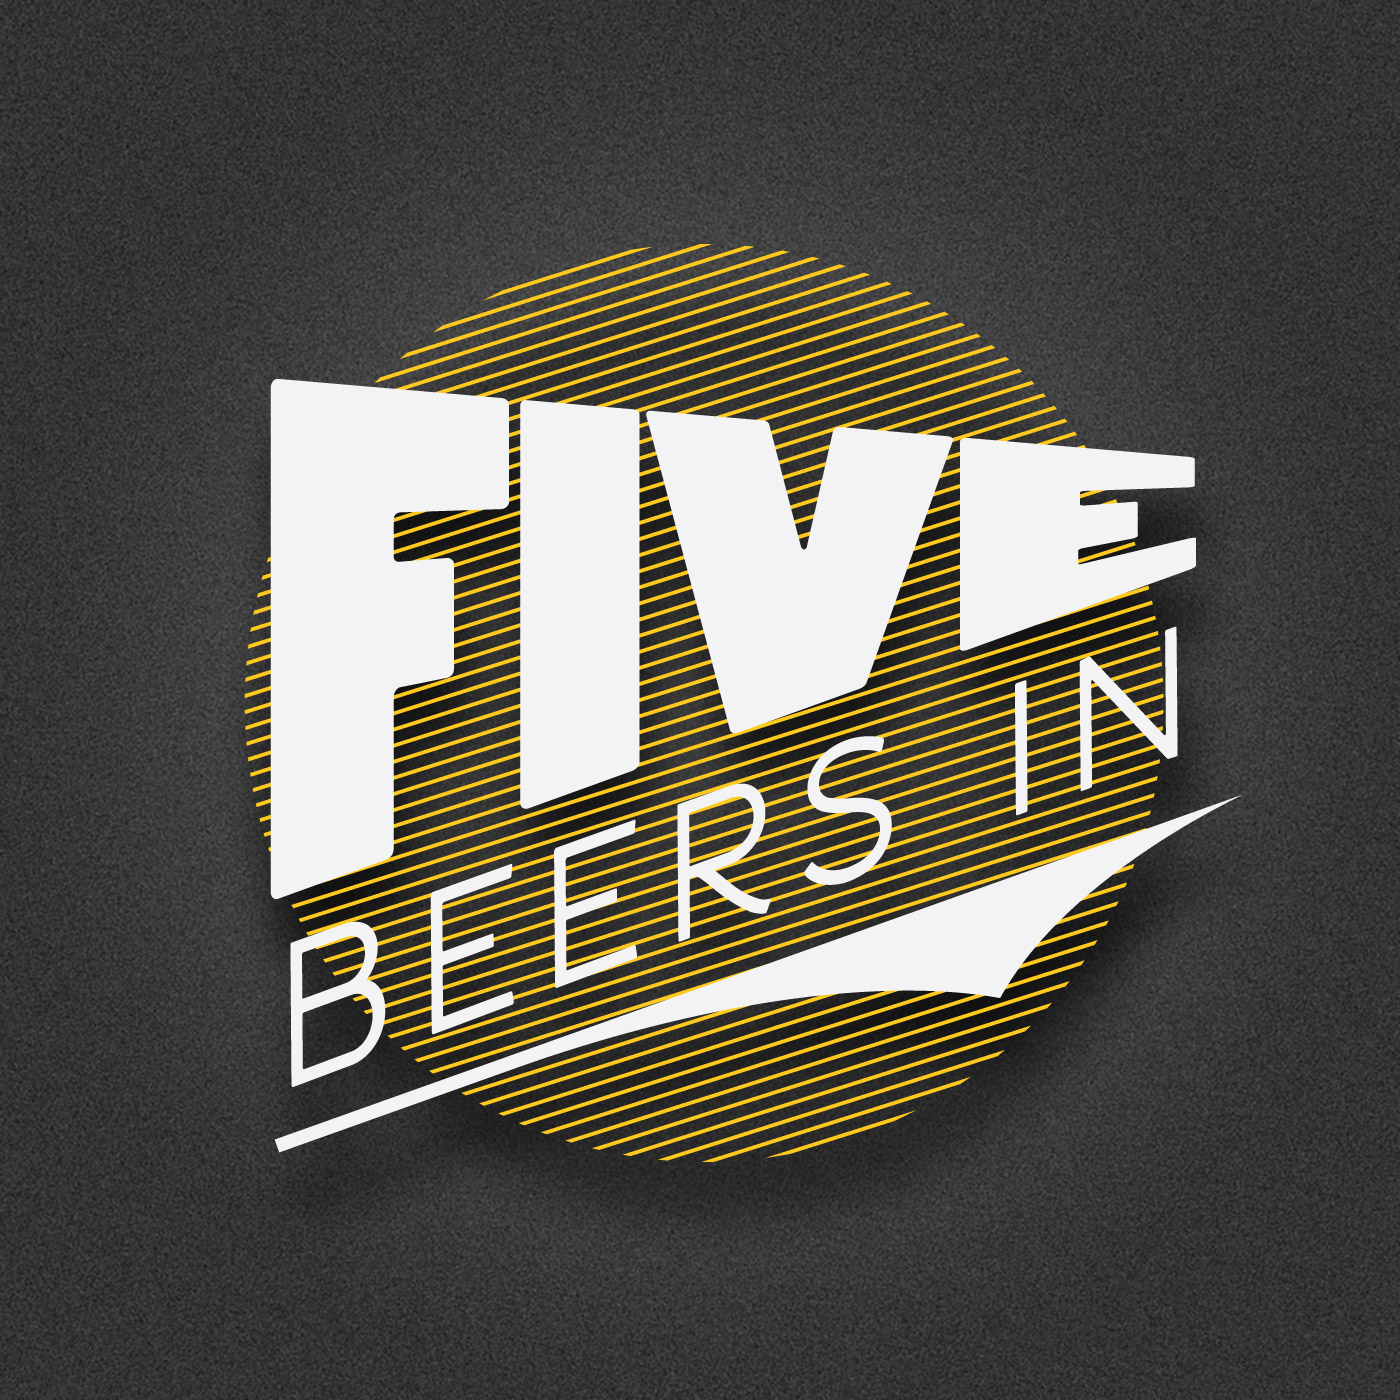 fivebeersin.com » Podcasts